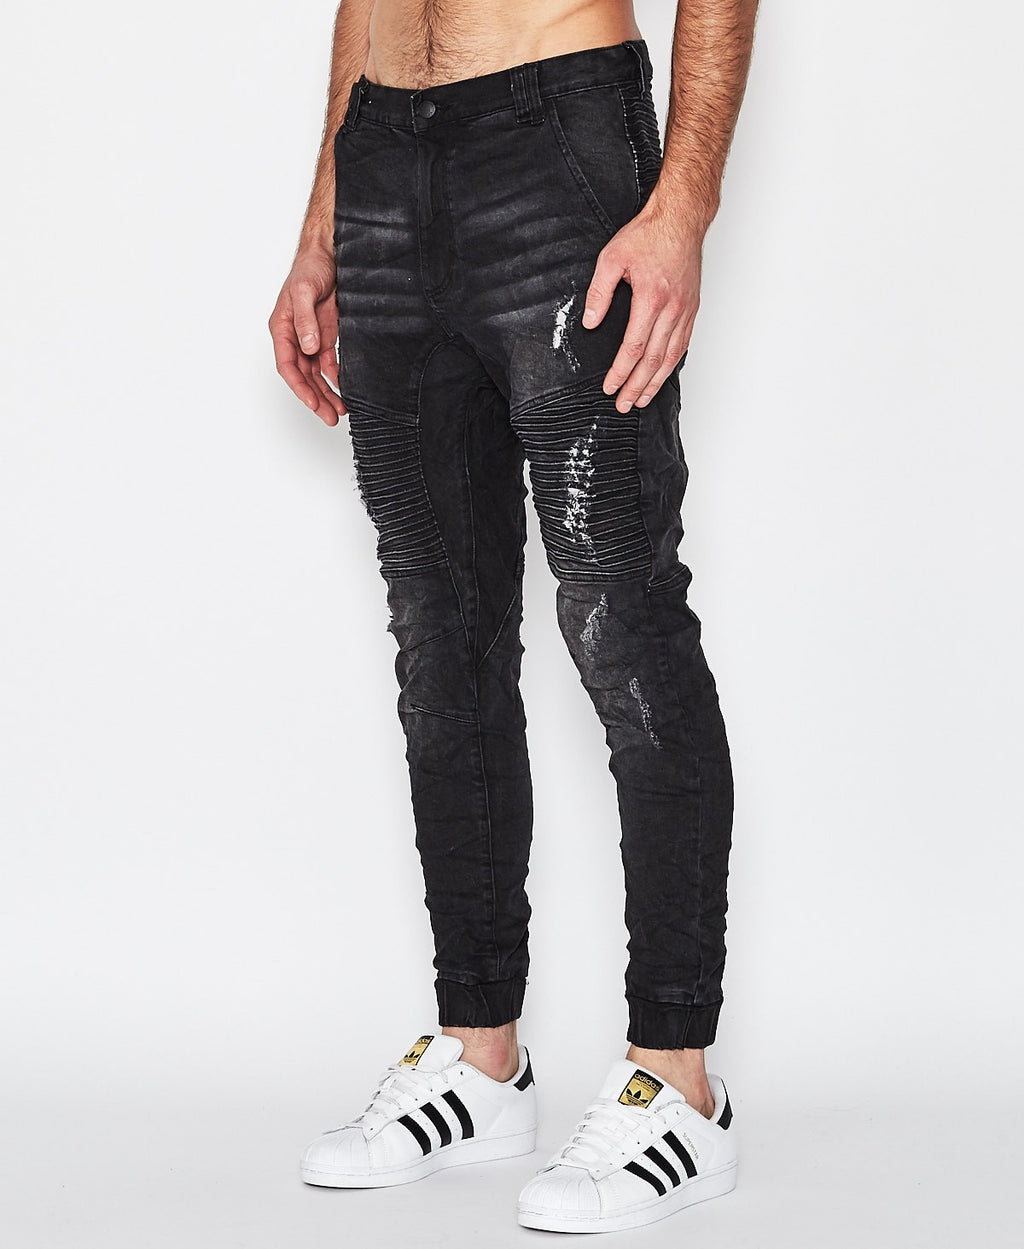 Destroyer Pant